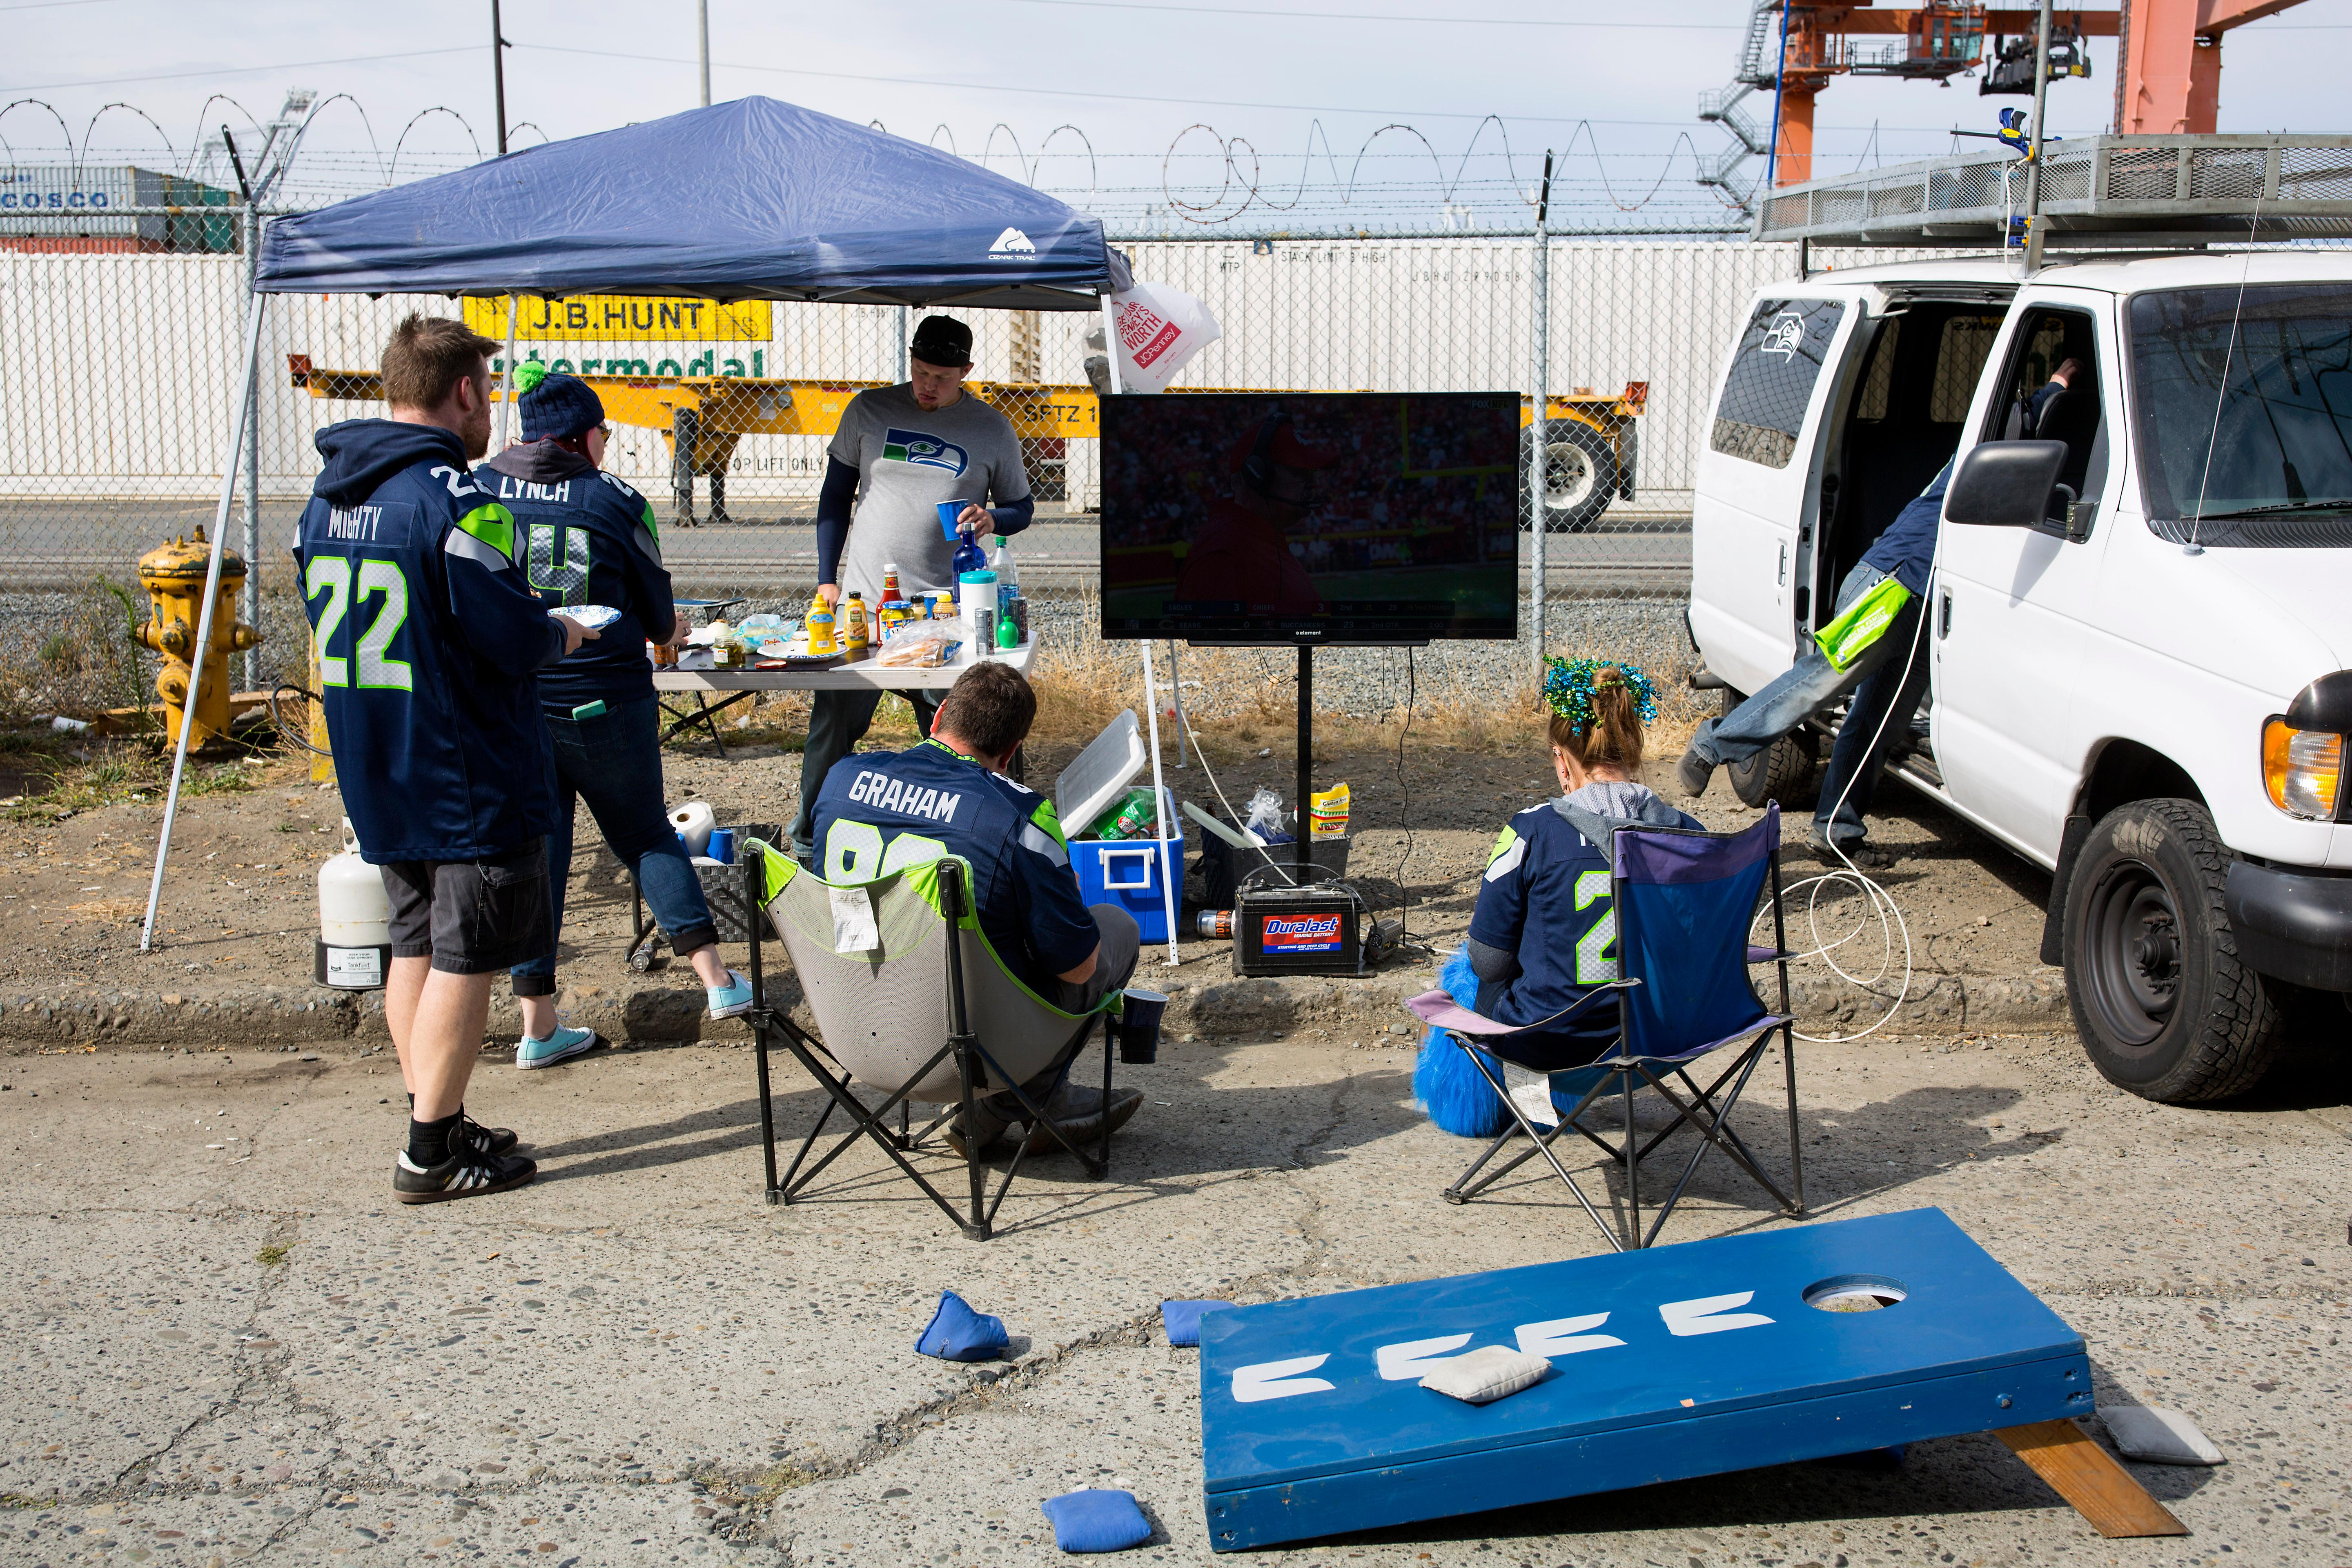 Seahawks fans tailgate and brace for a rainy home game opener as the Seattle Seahawks play the San Francisco 49ers at CenturyLink Field. The score was tied at the half, 6-6. (Sy Bean / Seattle Refined)